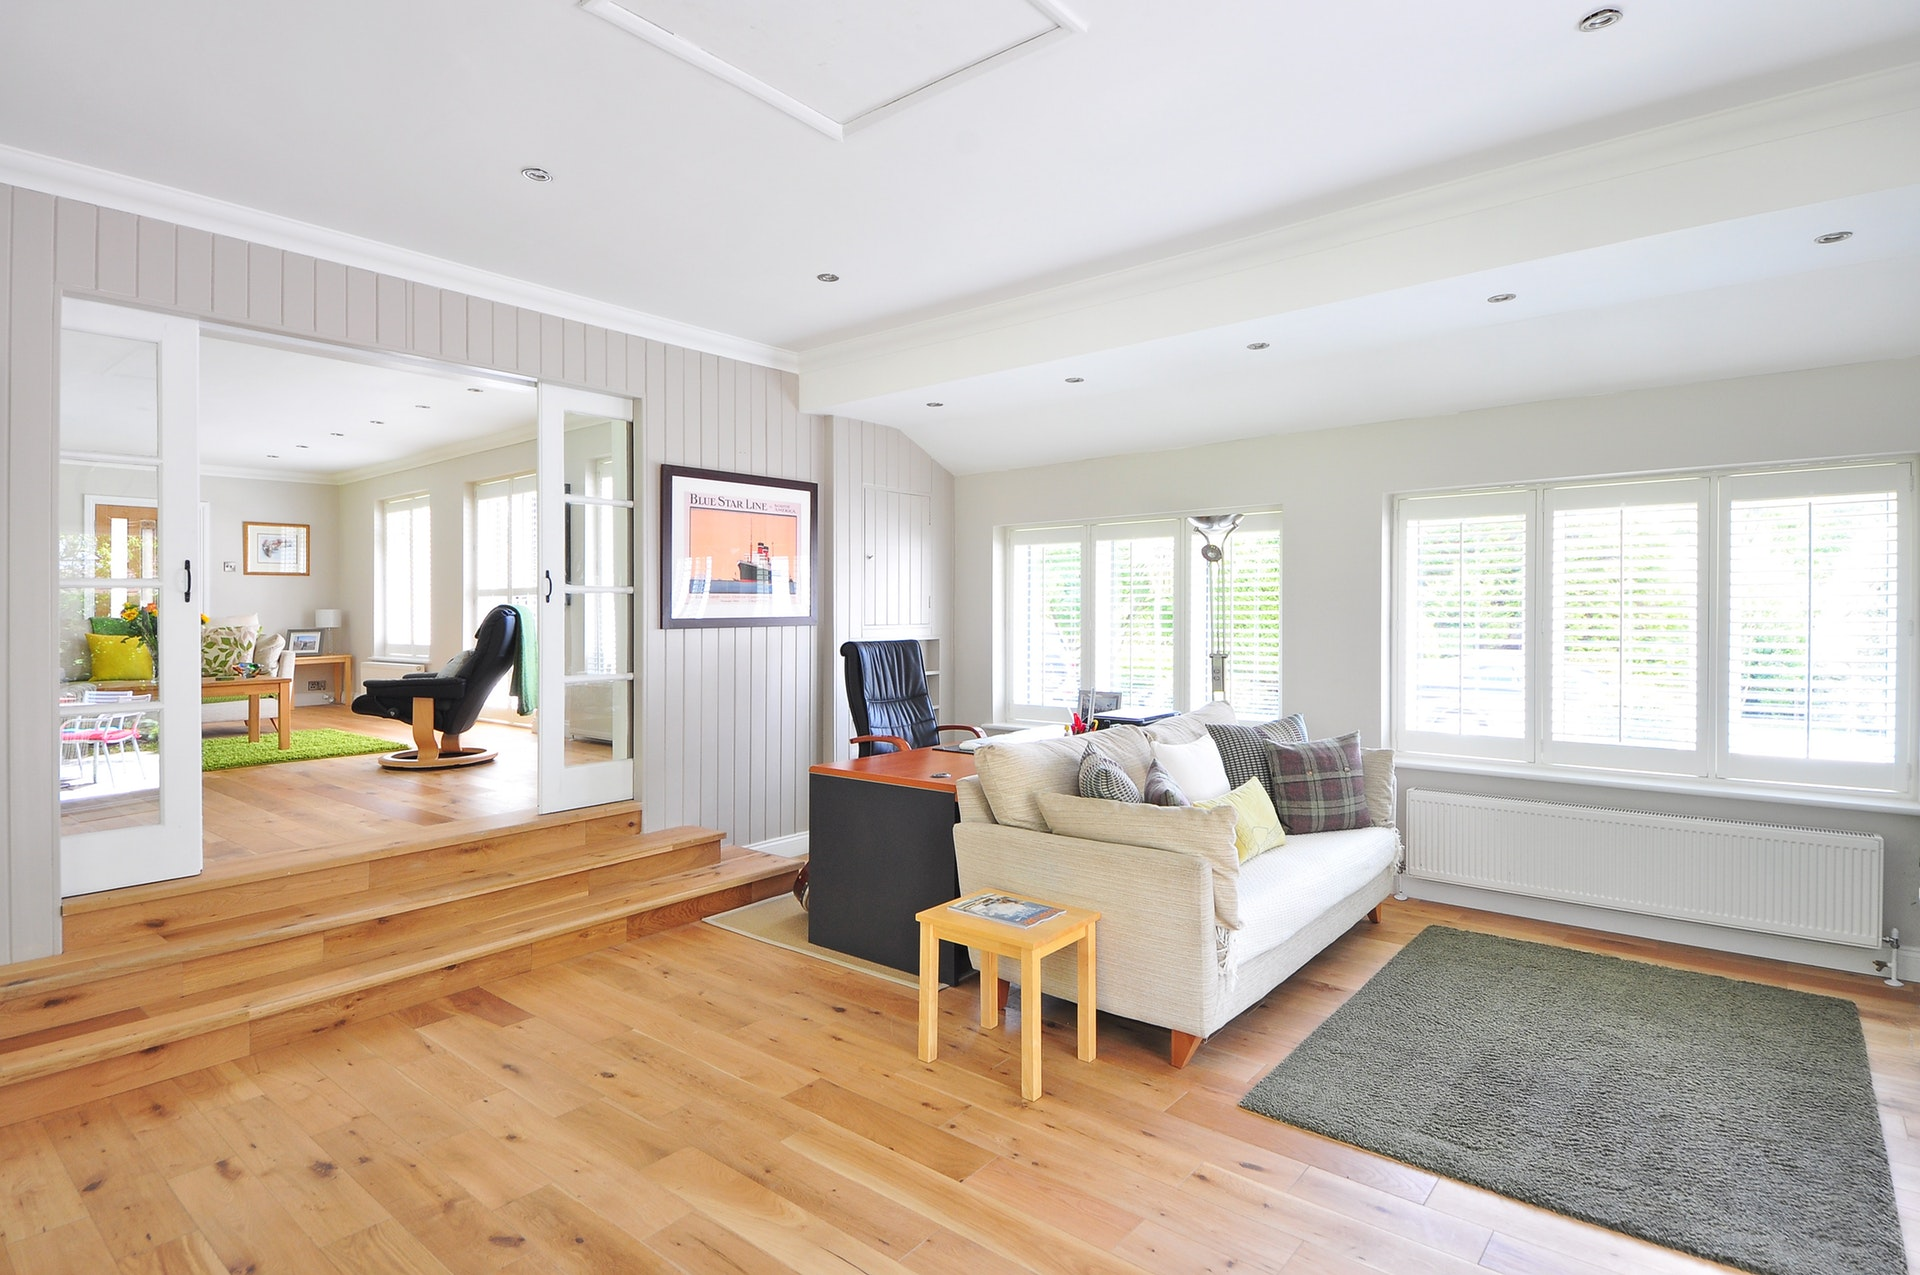 Bamboo Flooring in the living room